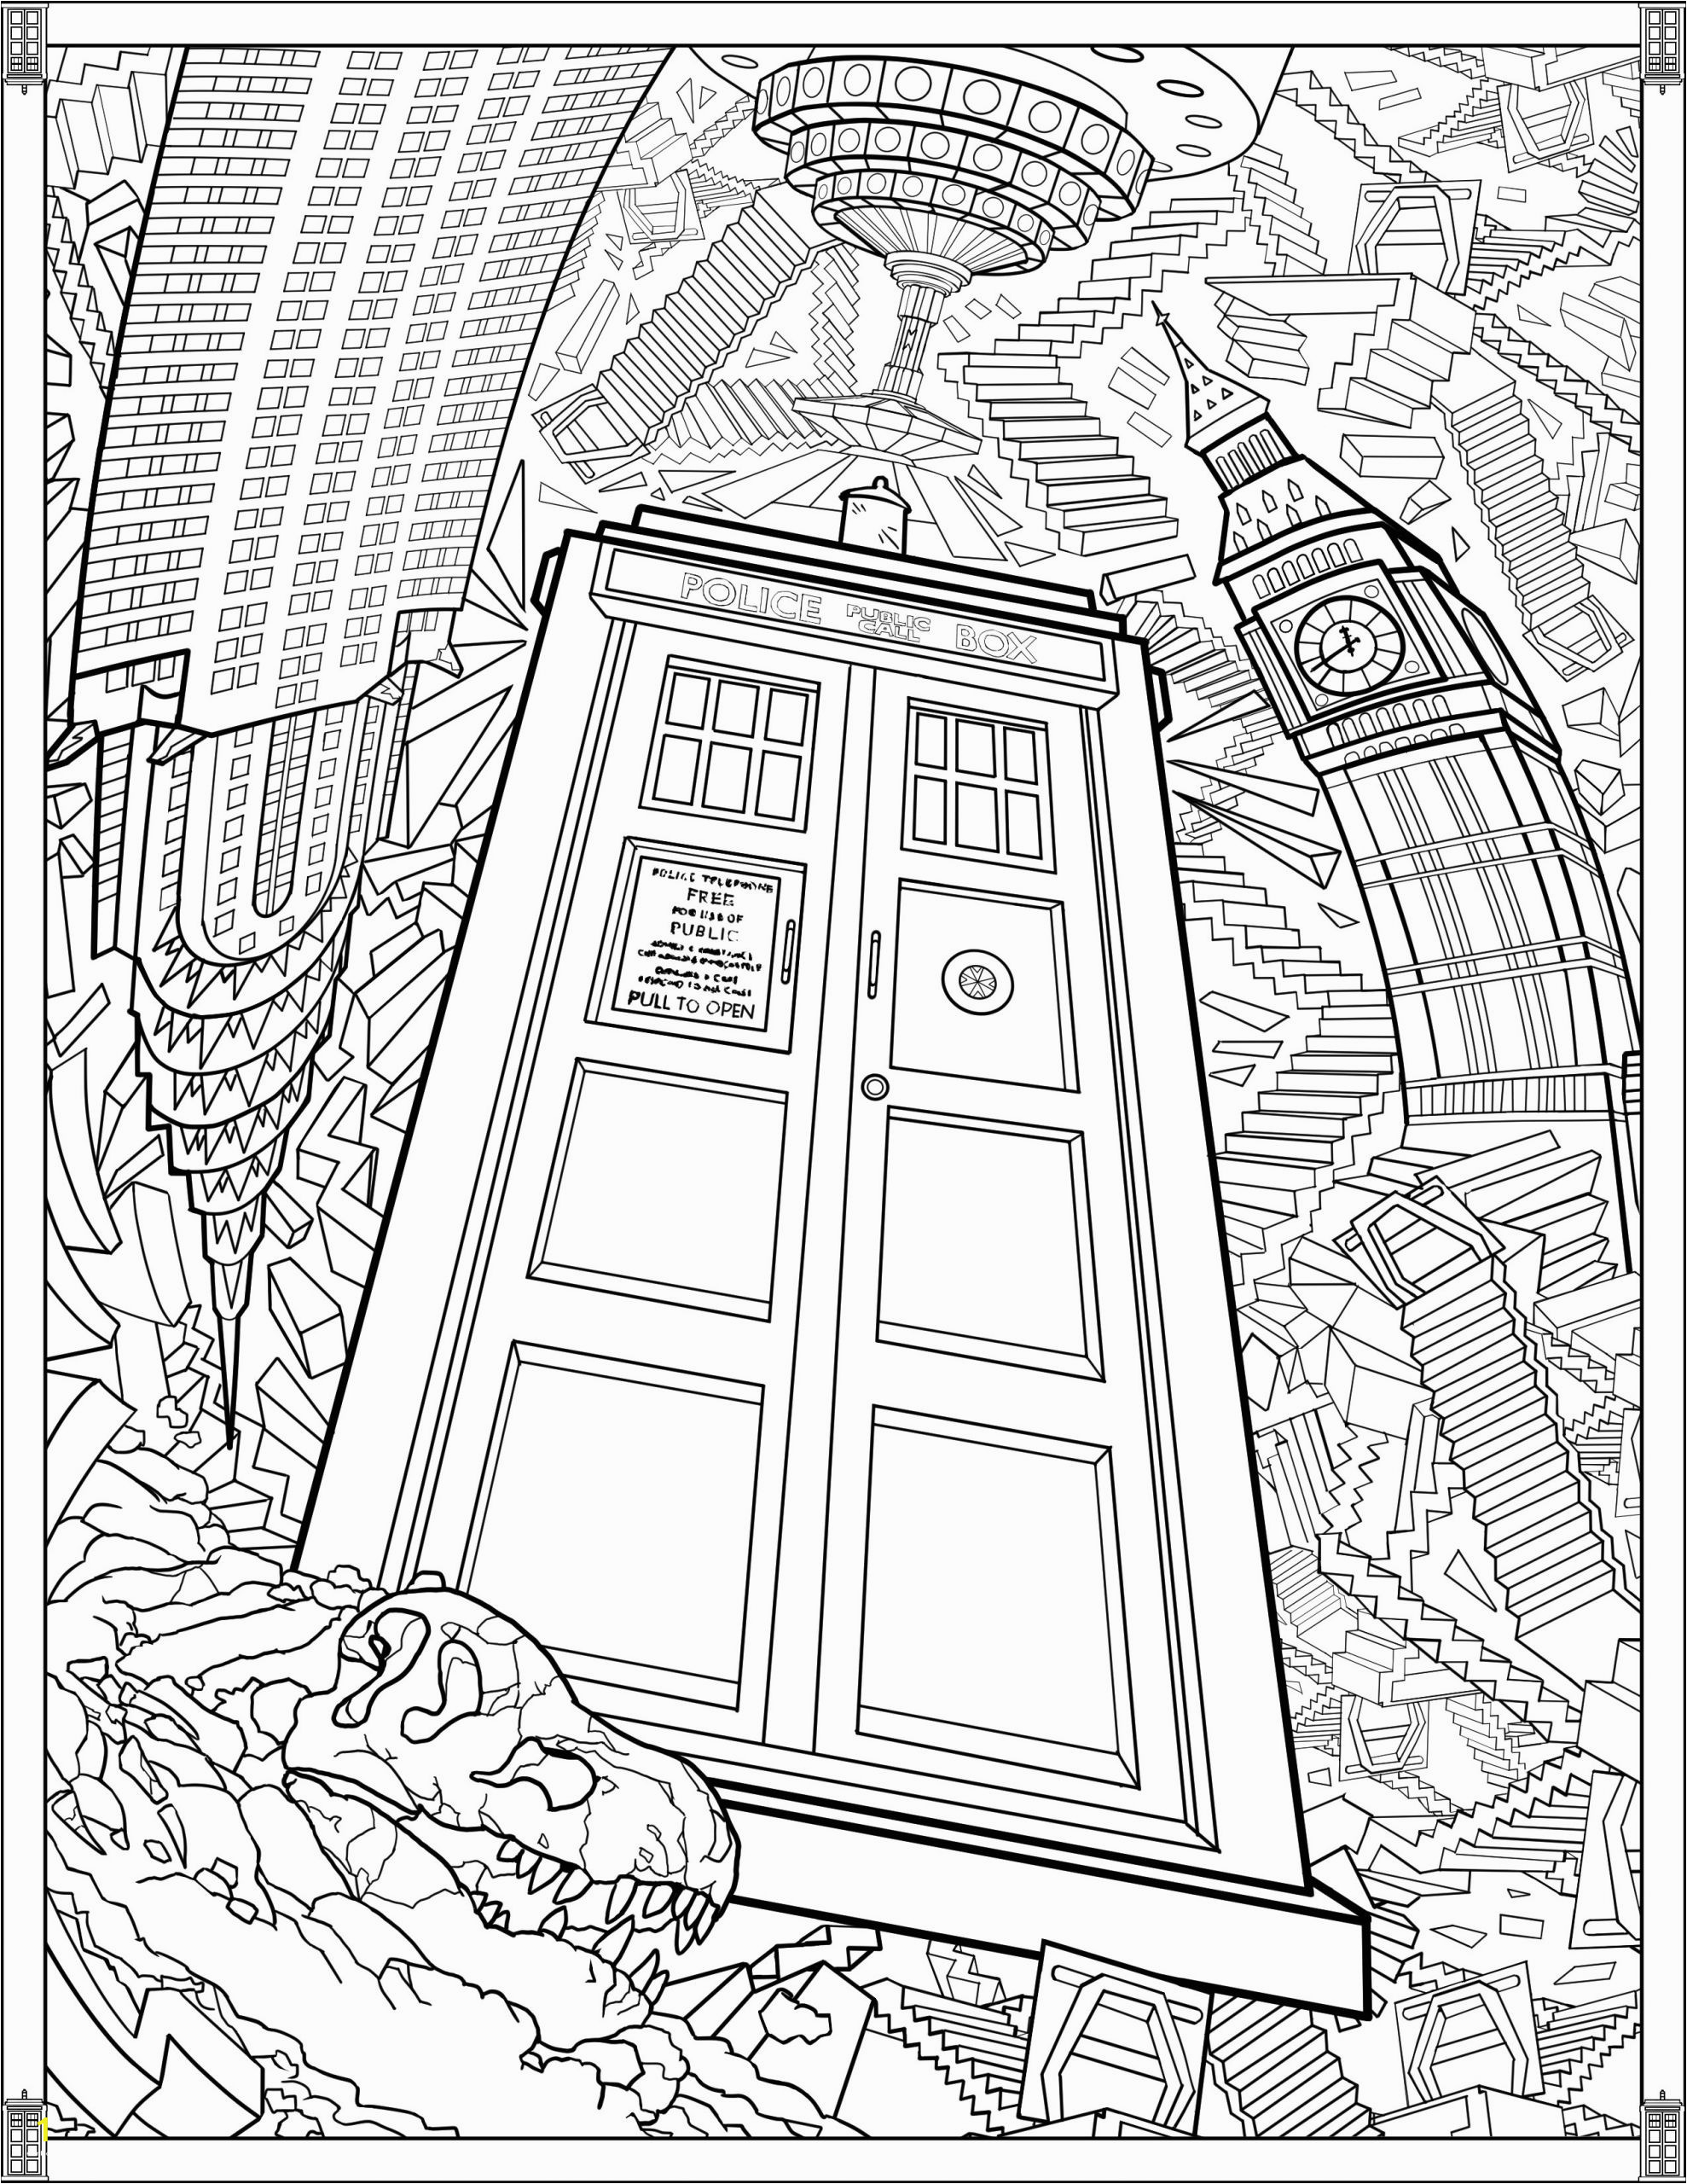 free printable 4th of july coloring pages best of doctor who wibbly wobbly timey wimey coloring pages of free printable 4th of july coloring pages scaled